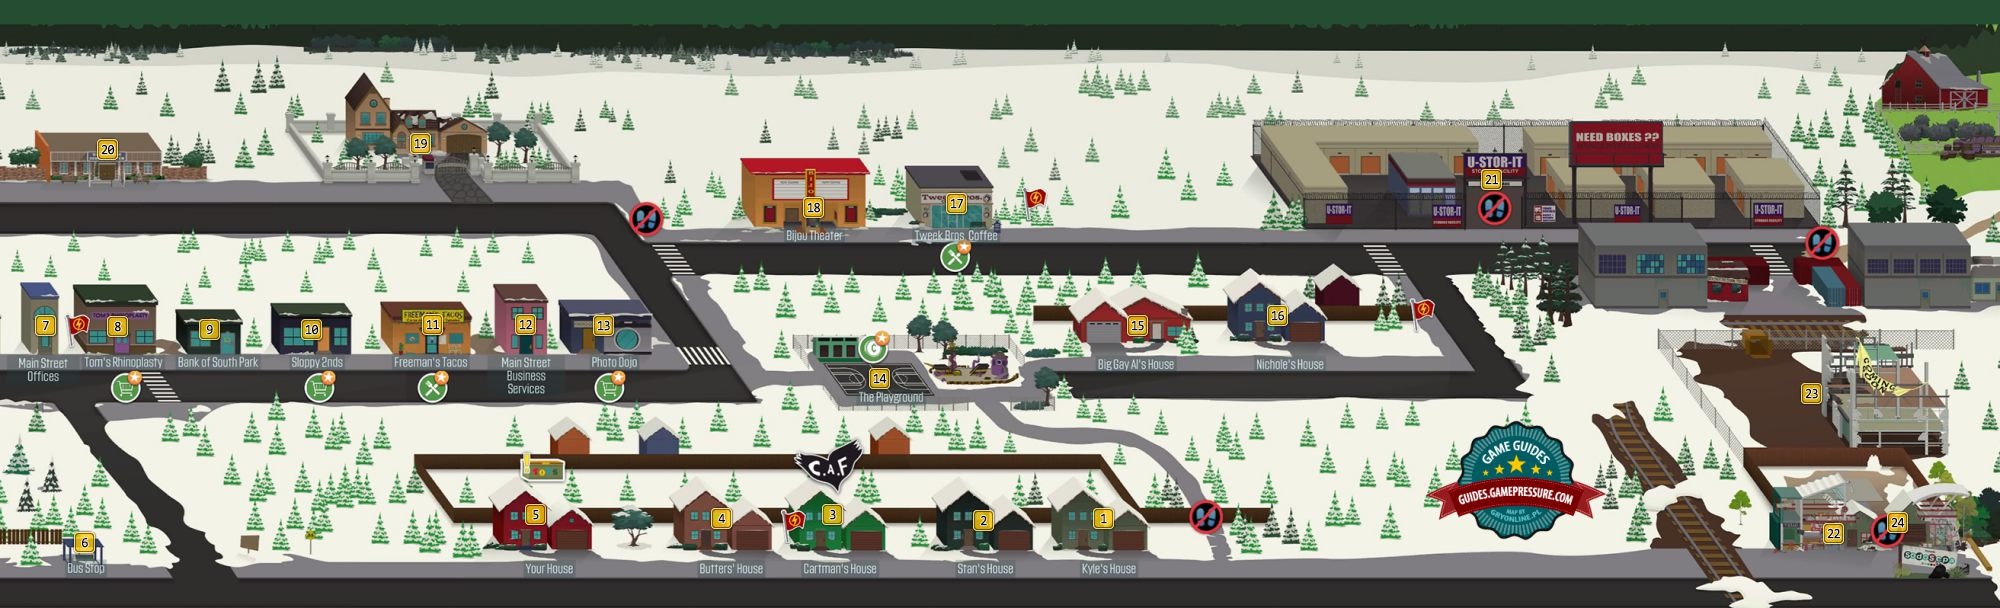 Map Of South Park Map of the Eastern South Park   South Park: The Fractured But